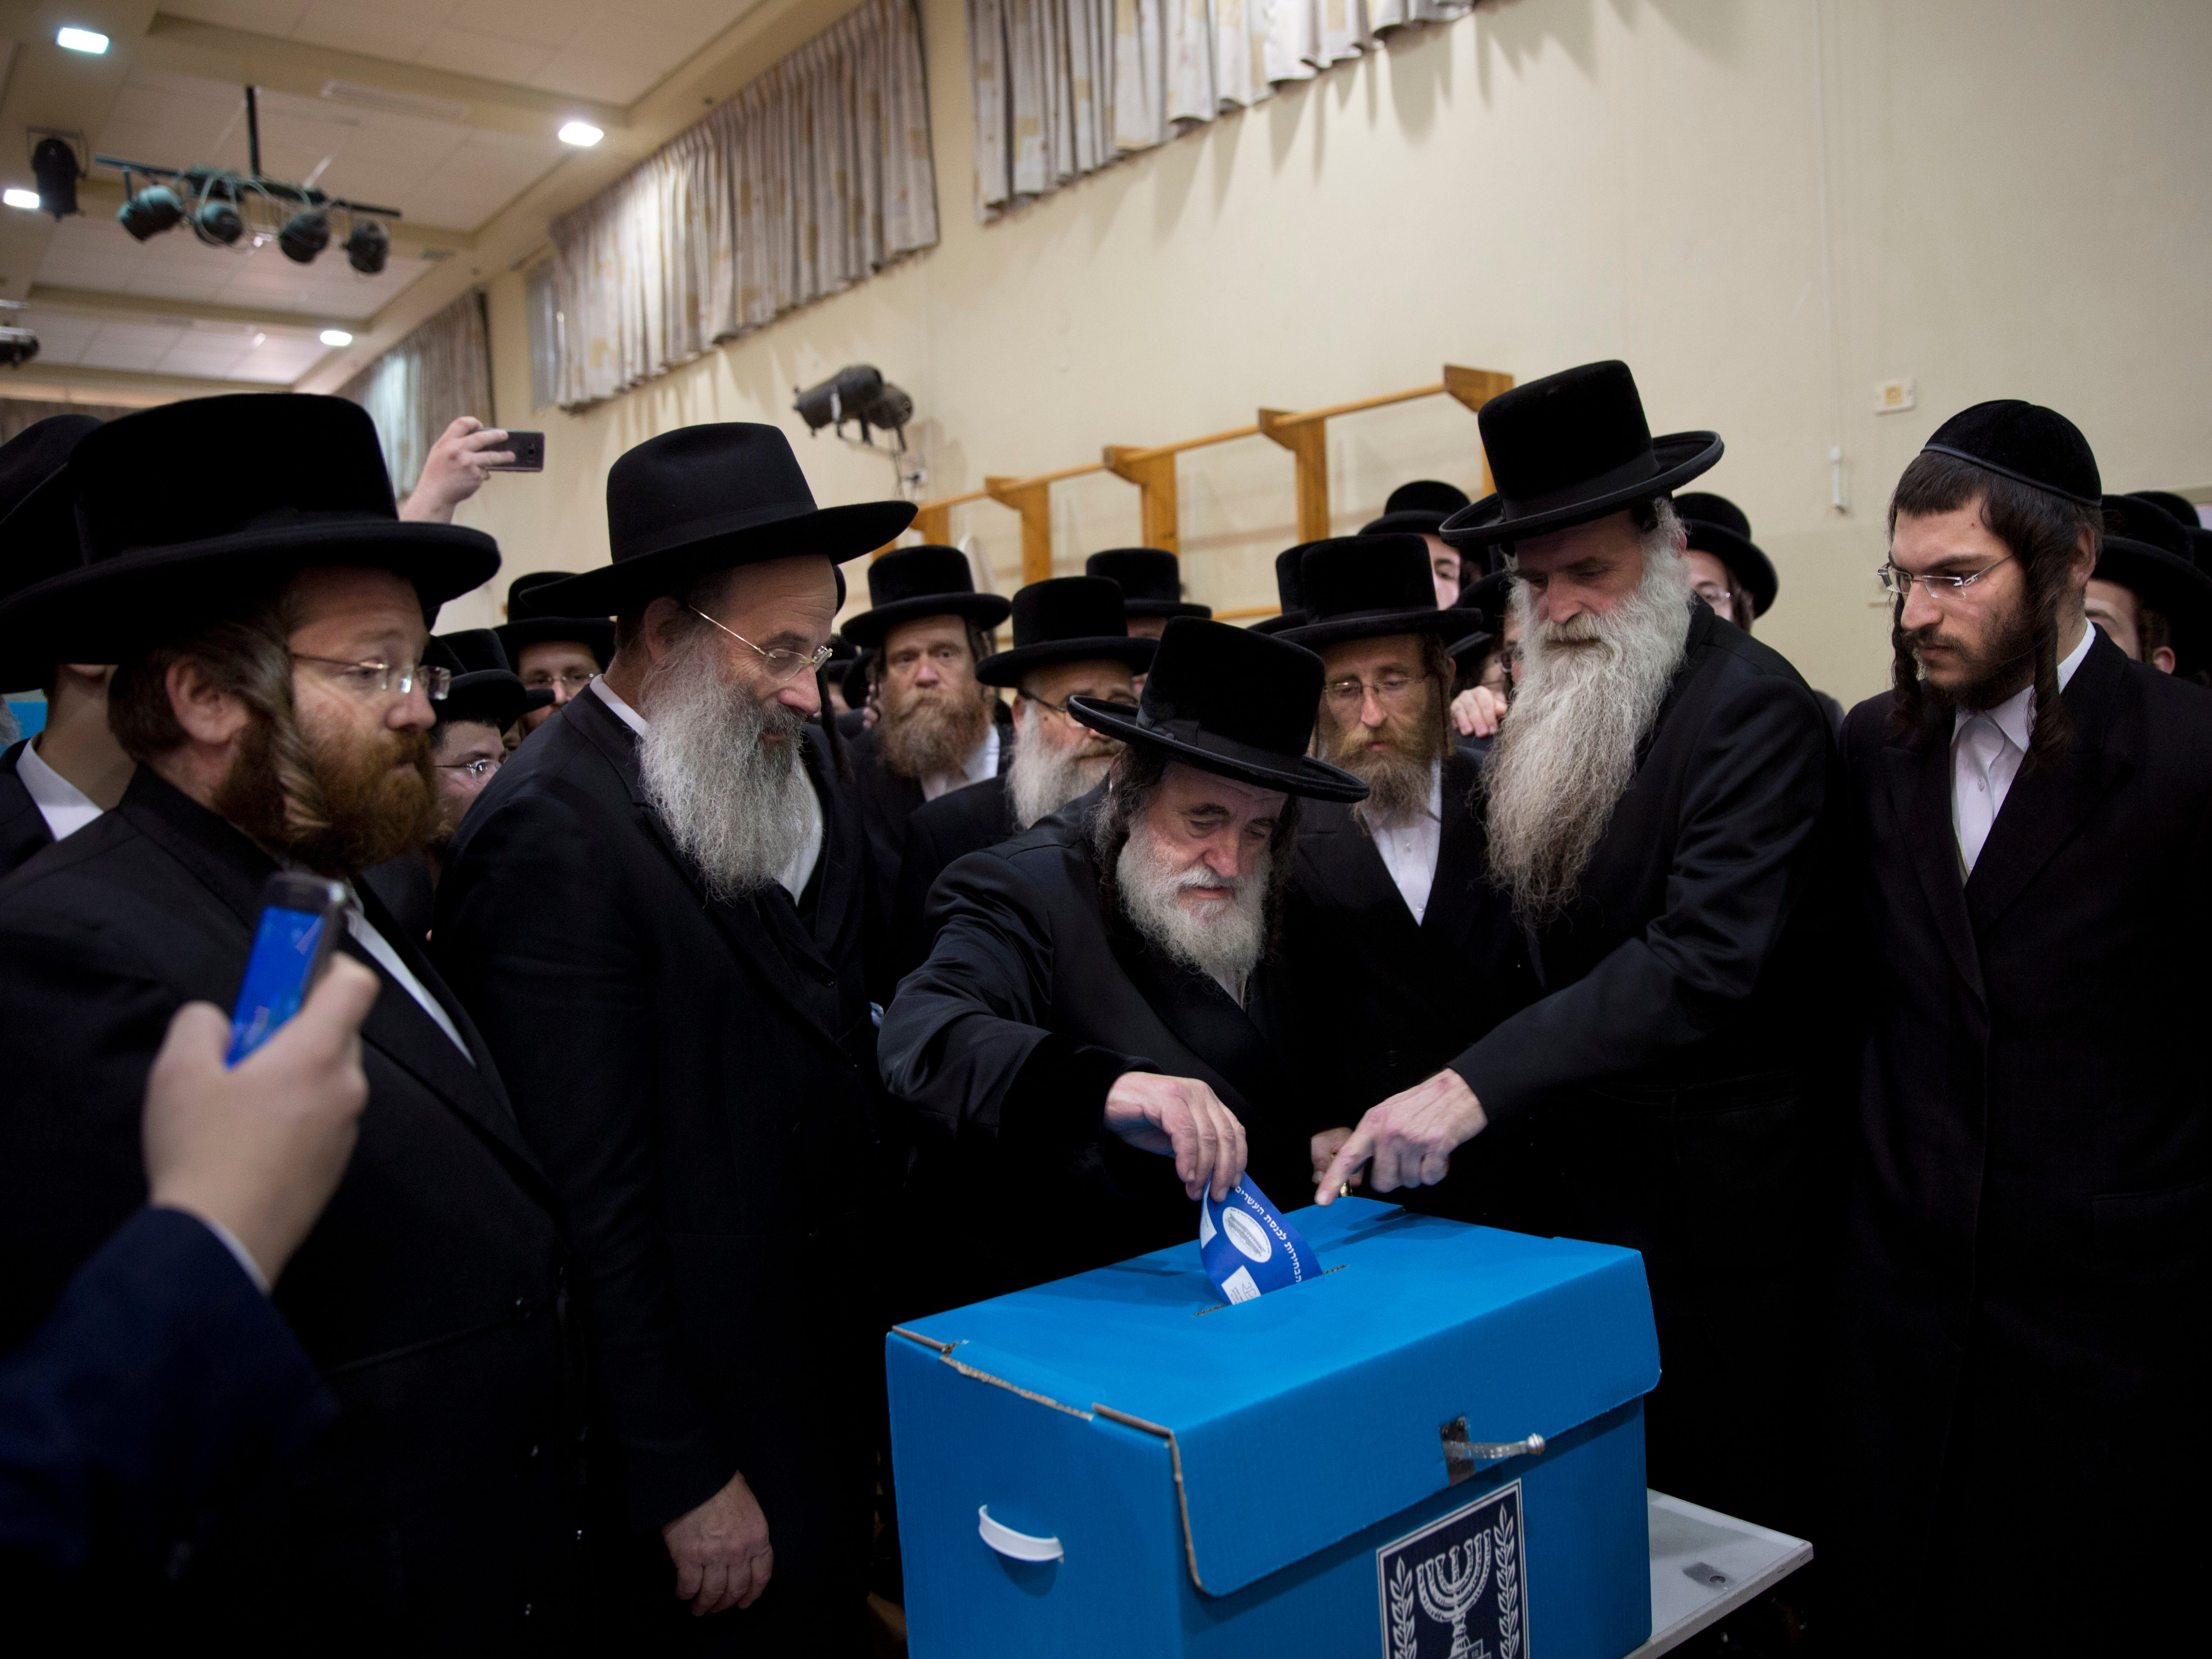 Rabbi Israel Hager votes for Israel's parliamentary election at a polling station in Bnei Brak, Israel, Tuesday, April 9, 2019.